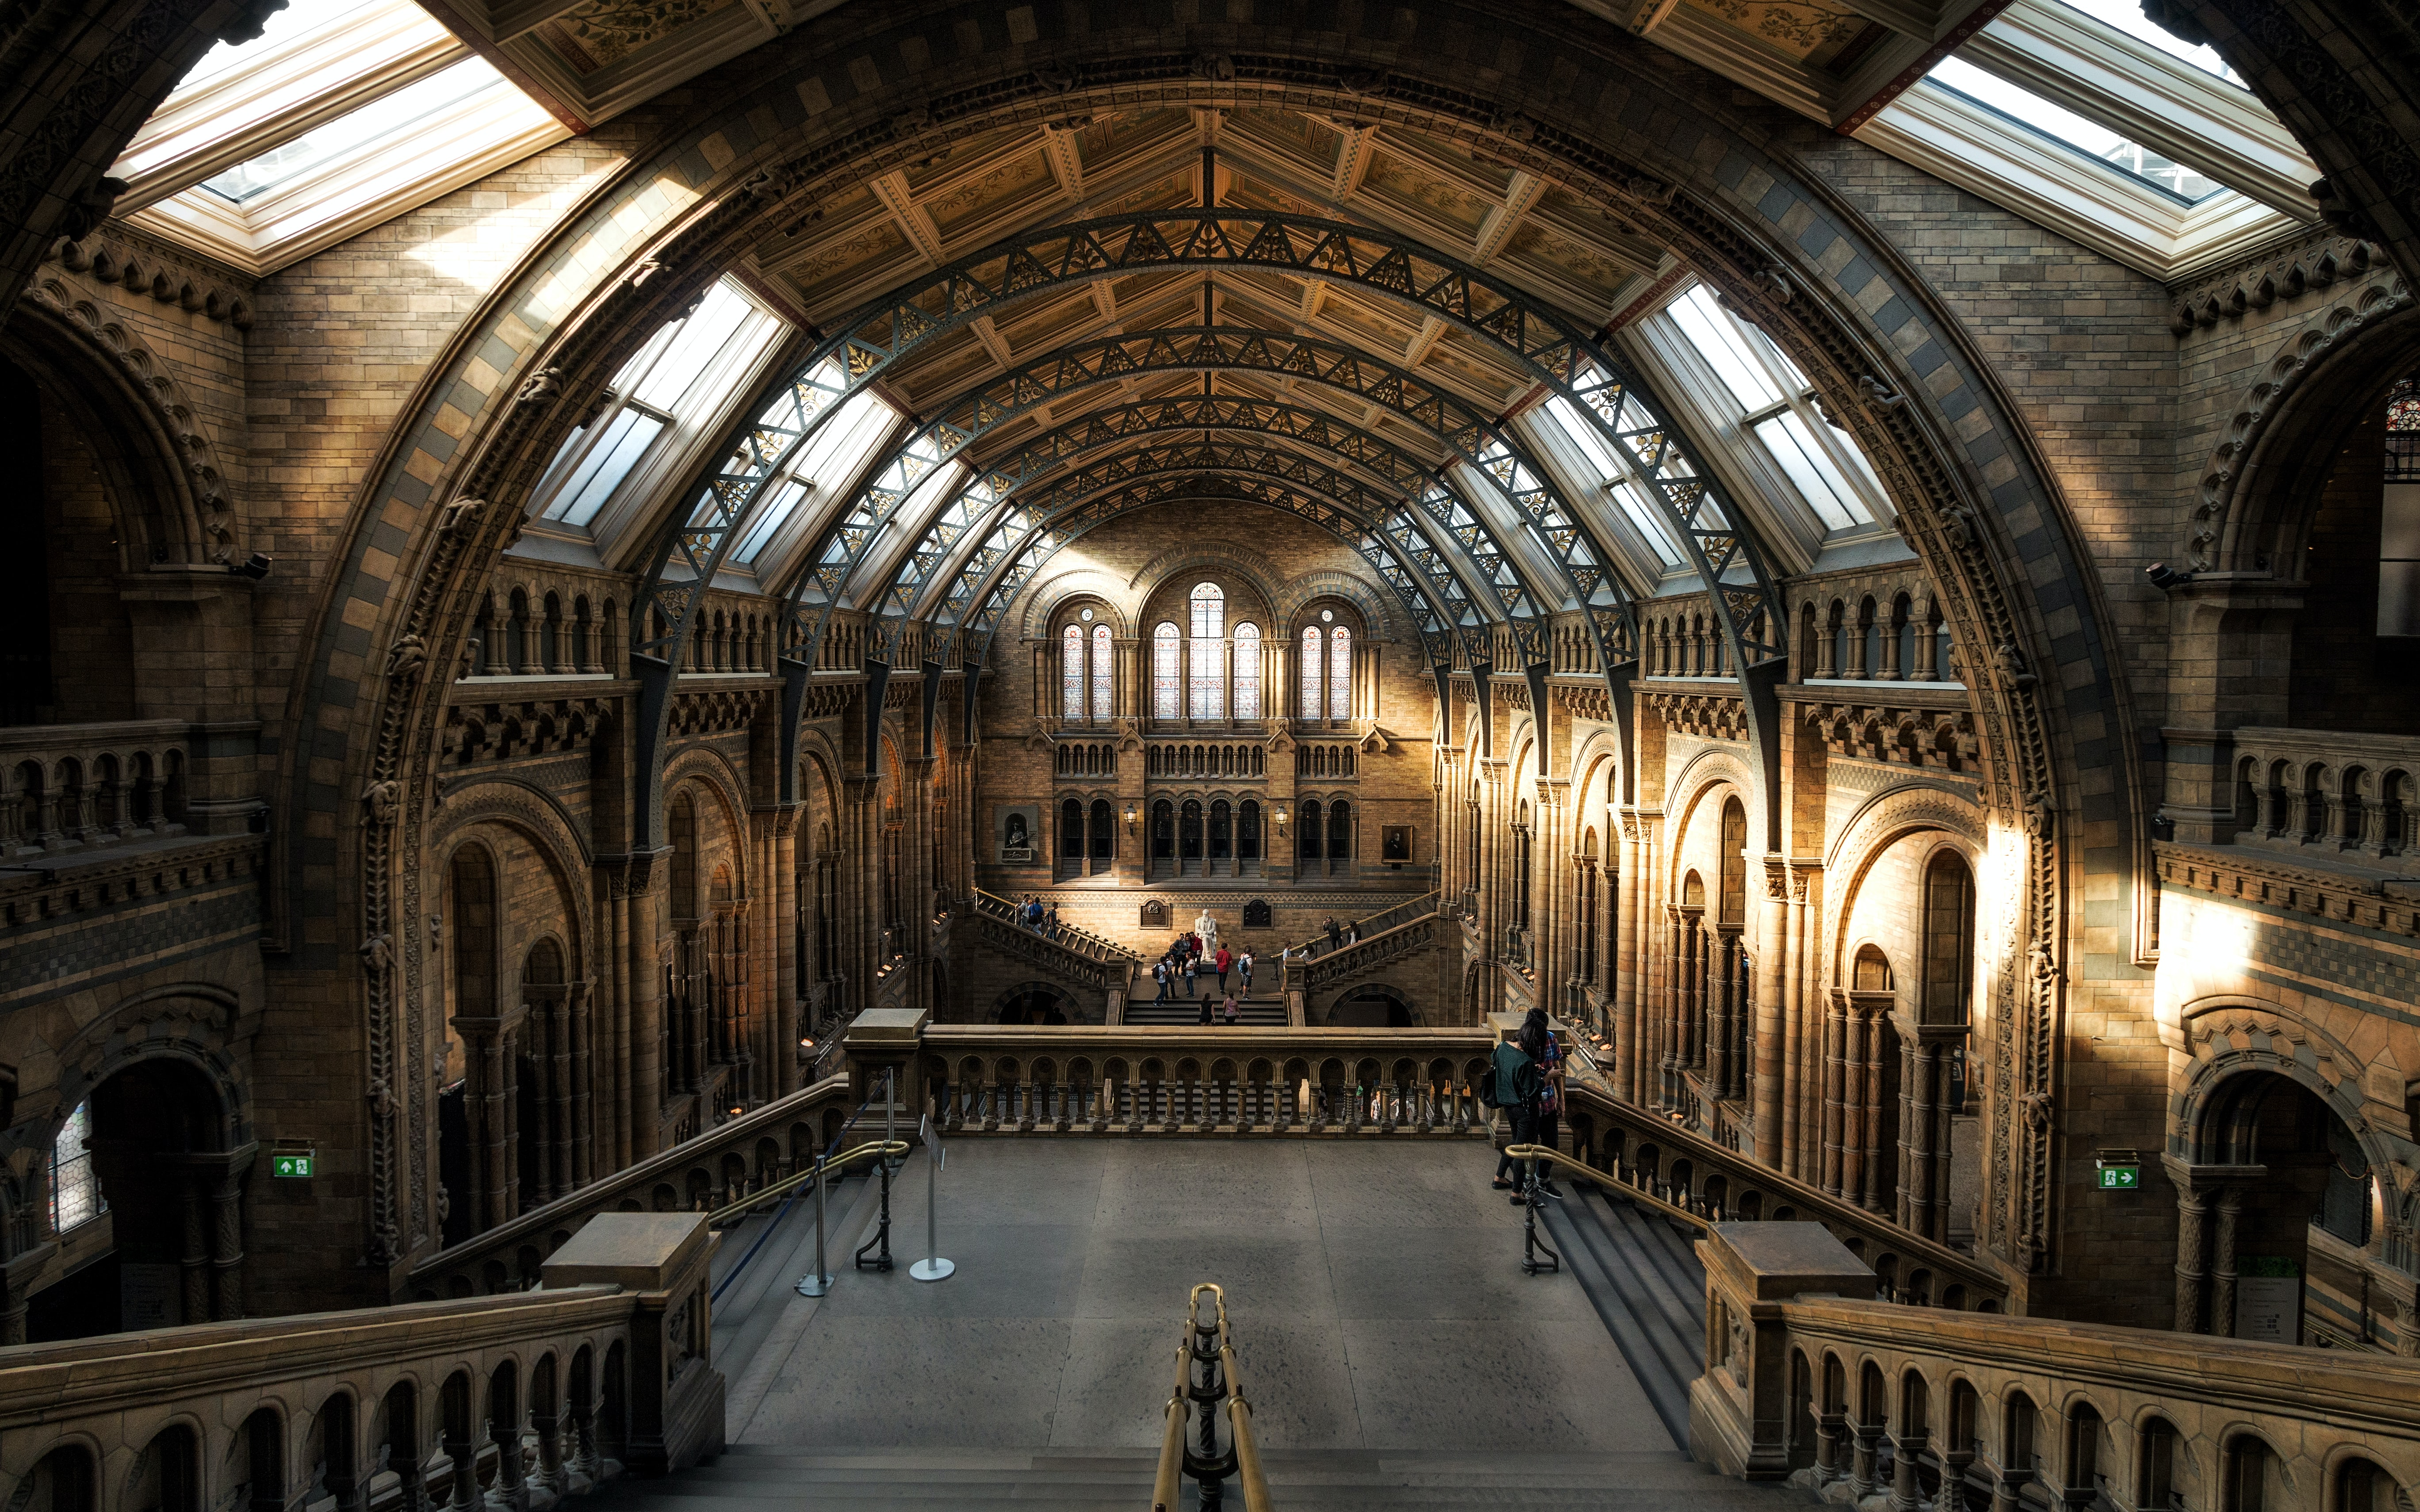 The vaulted hall in the Natural History Museum in London illuminated by the sun